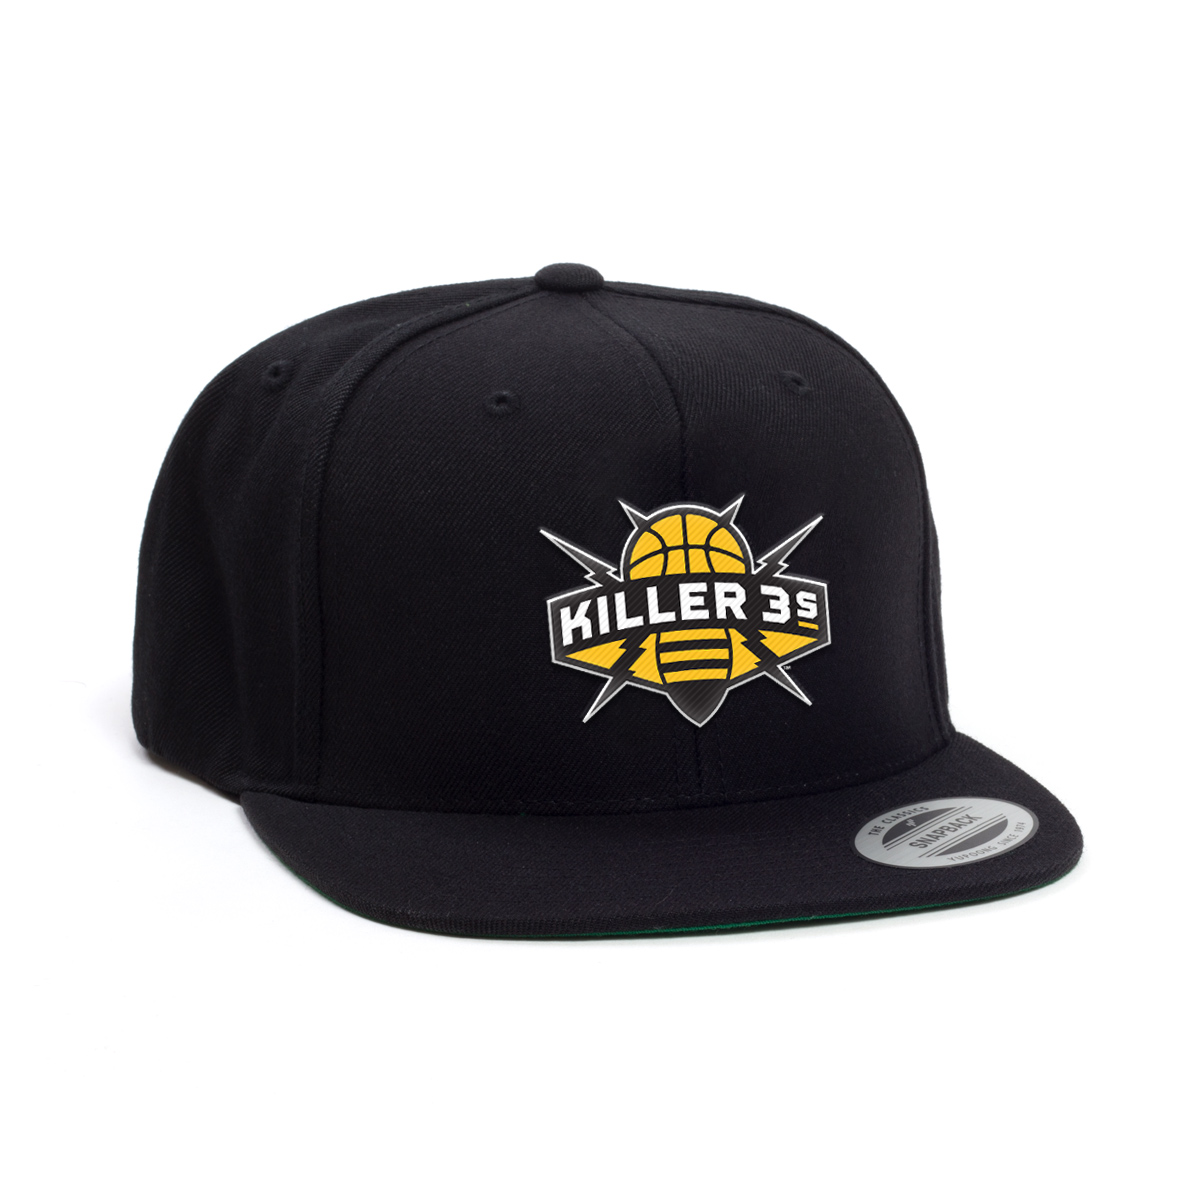 BIG3 KILLER 3'S FLEX HAT